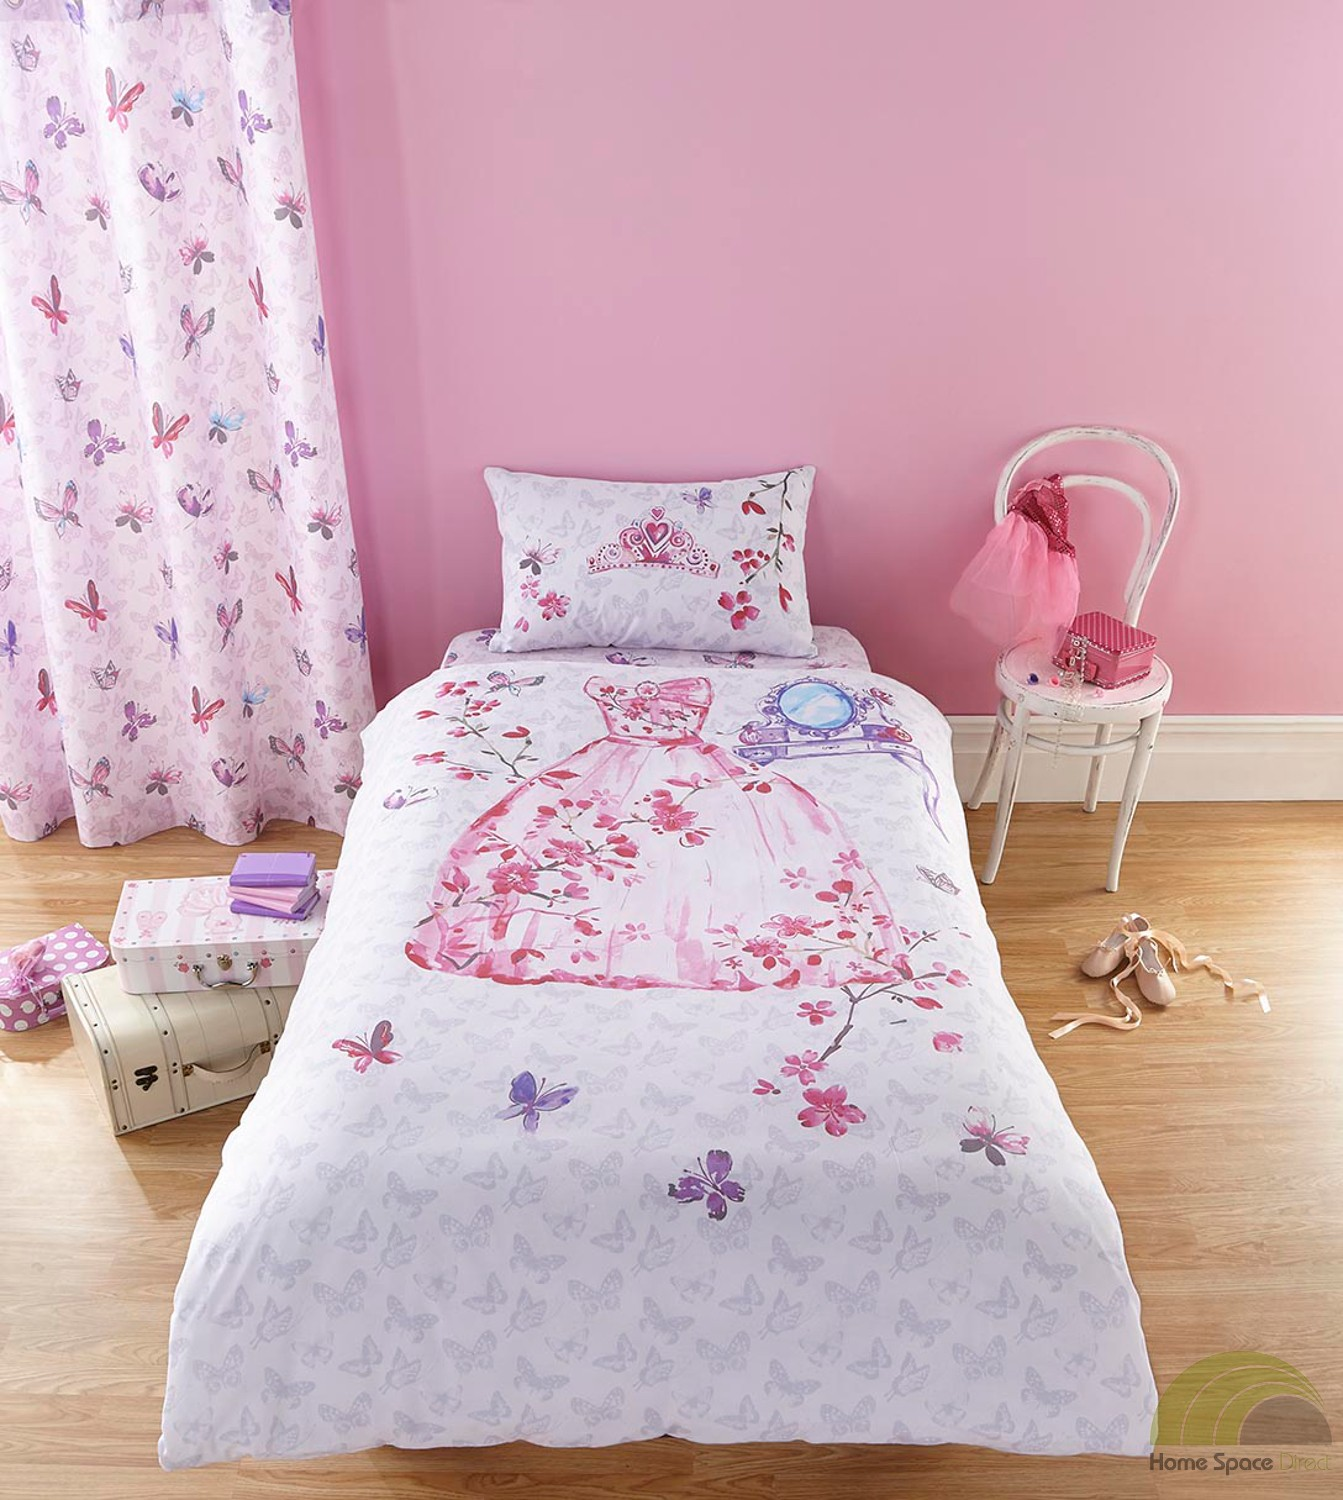 Girls Princess Single Duvet Cover Bed Set Or Curtains Pink